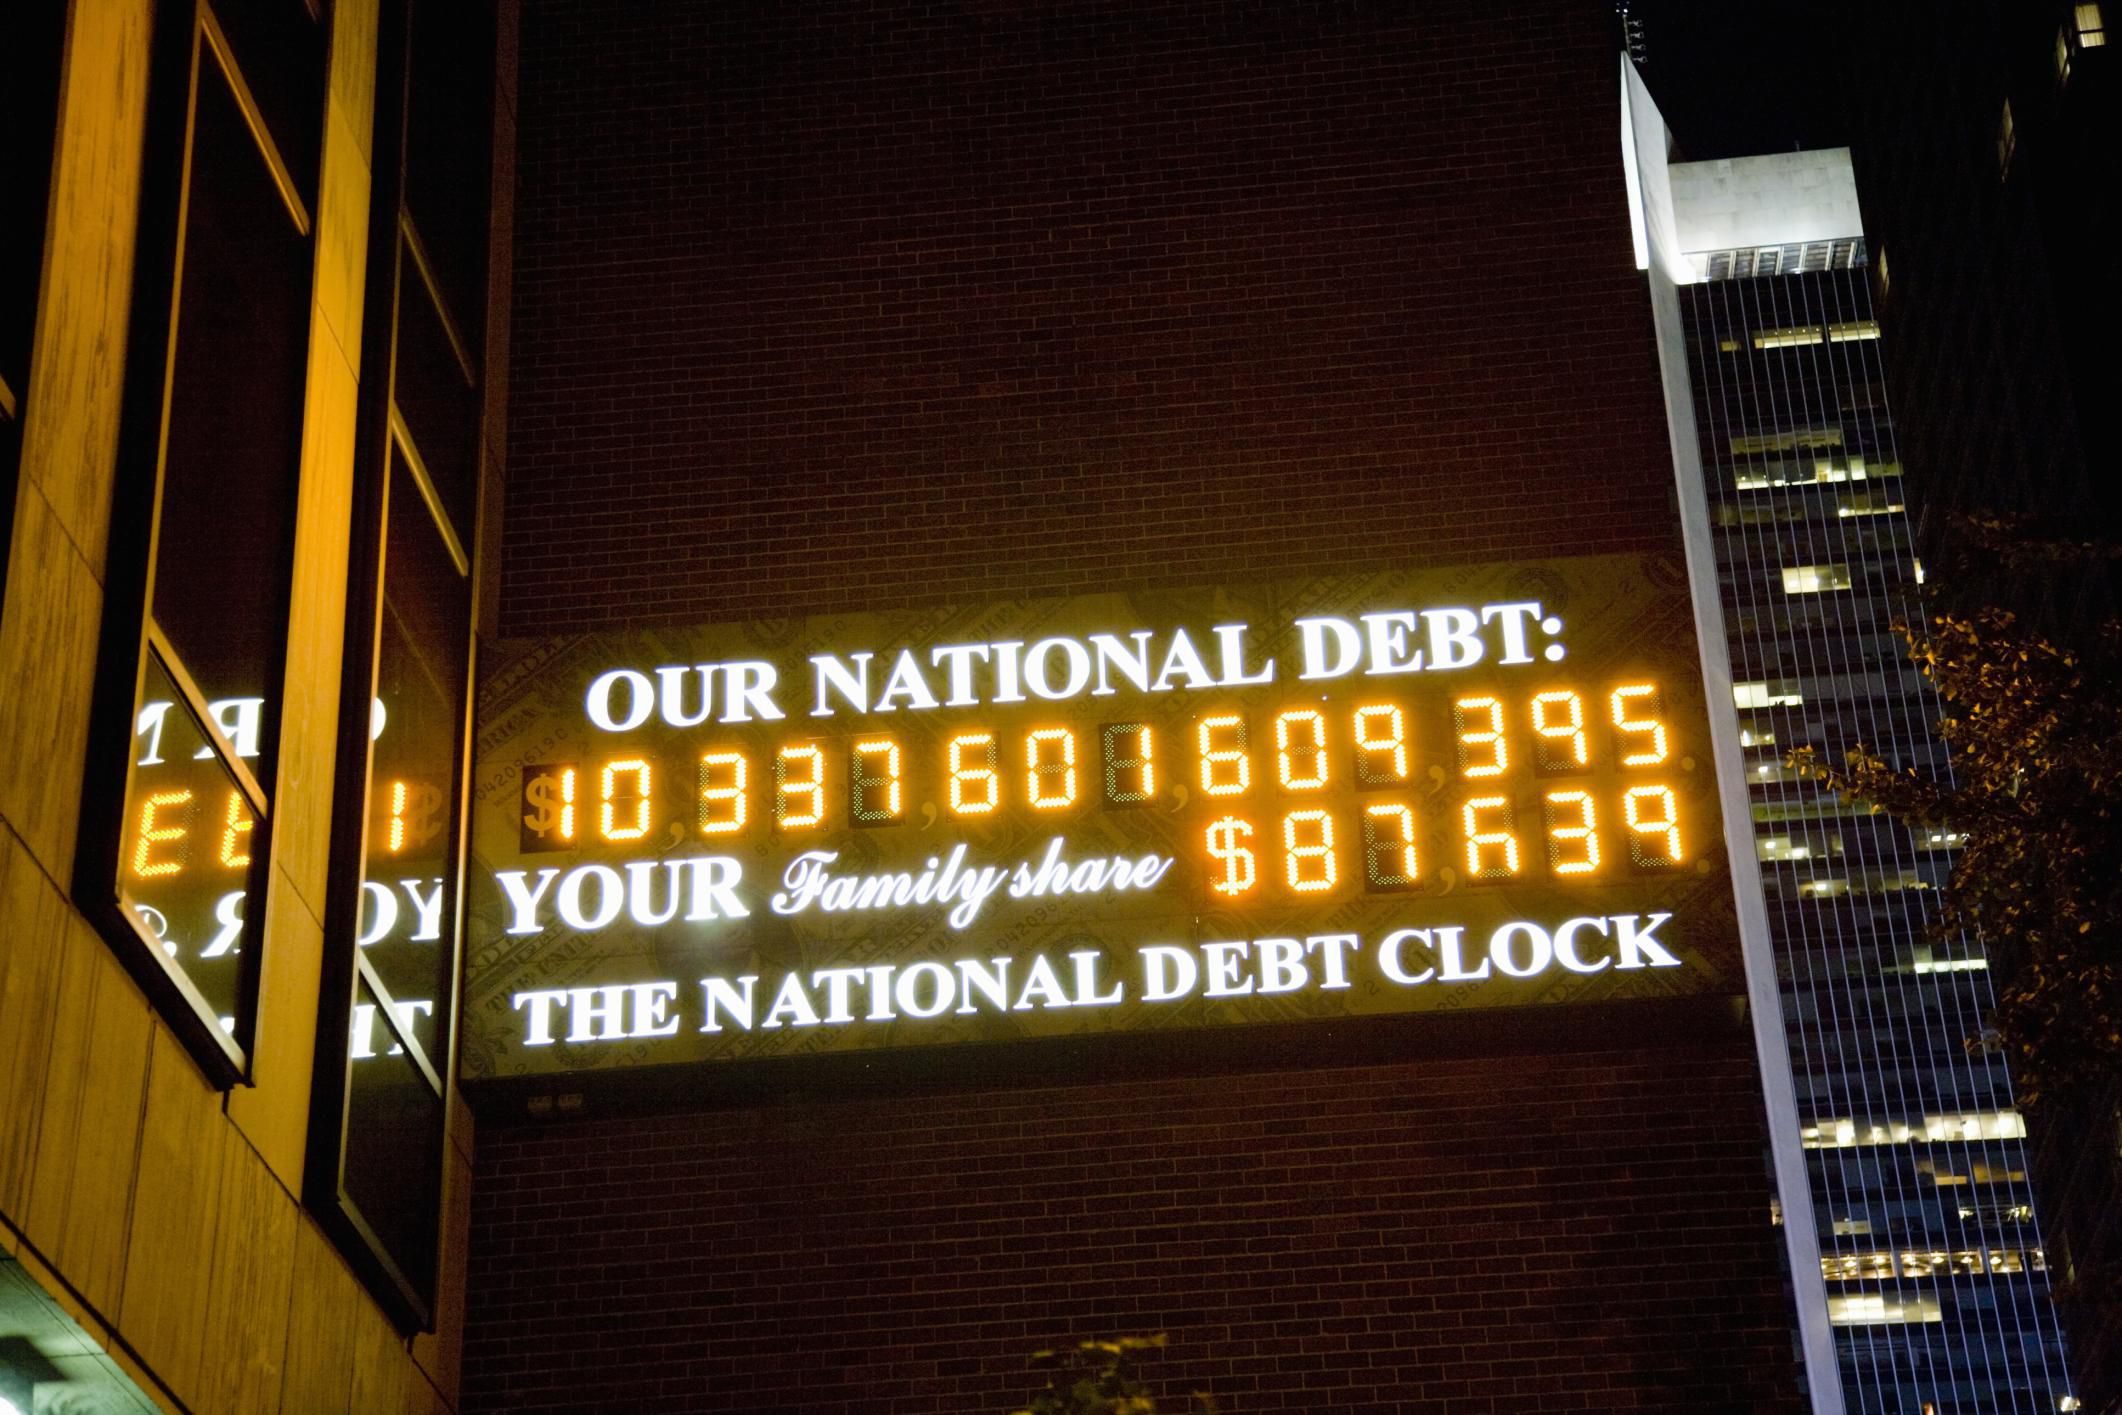 us national debt clock: importance and history